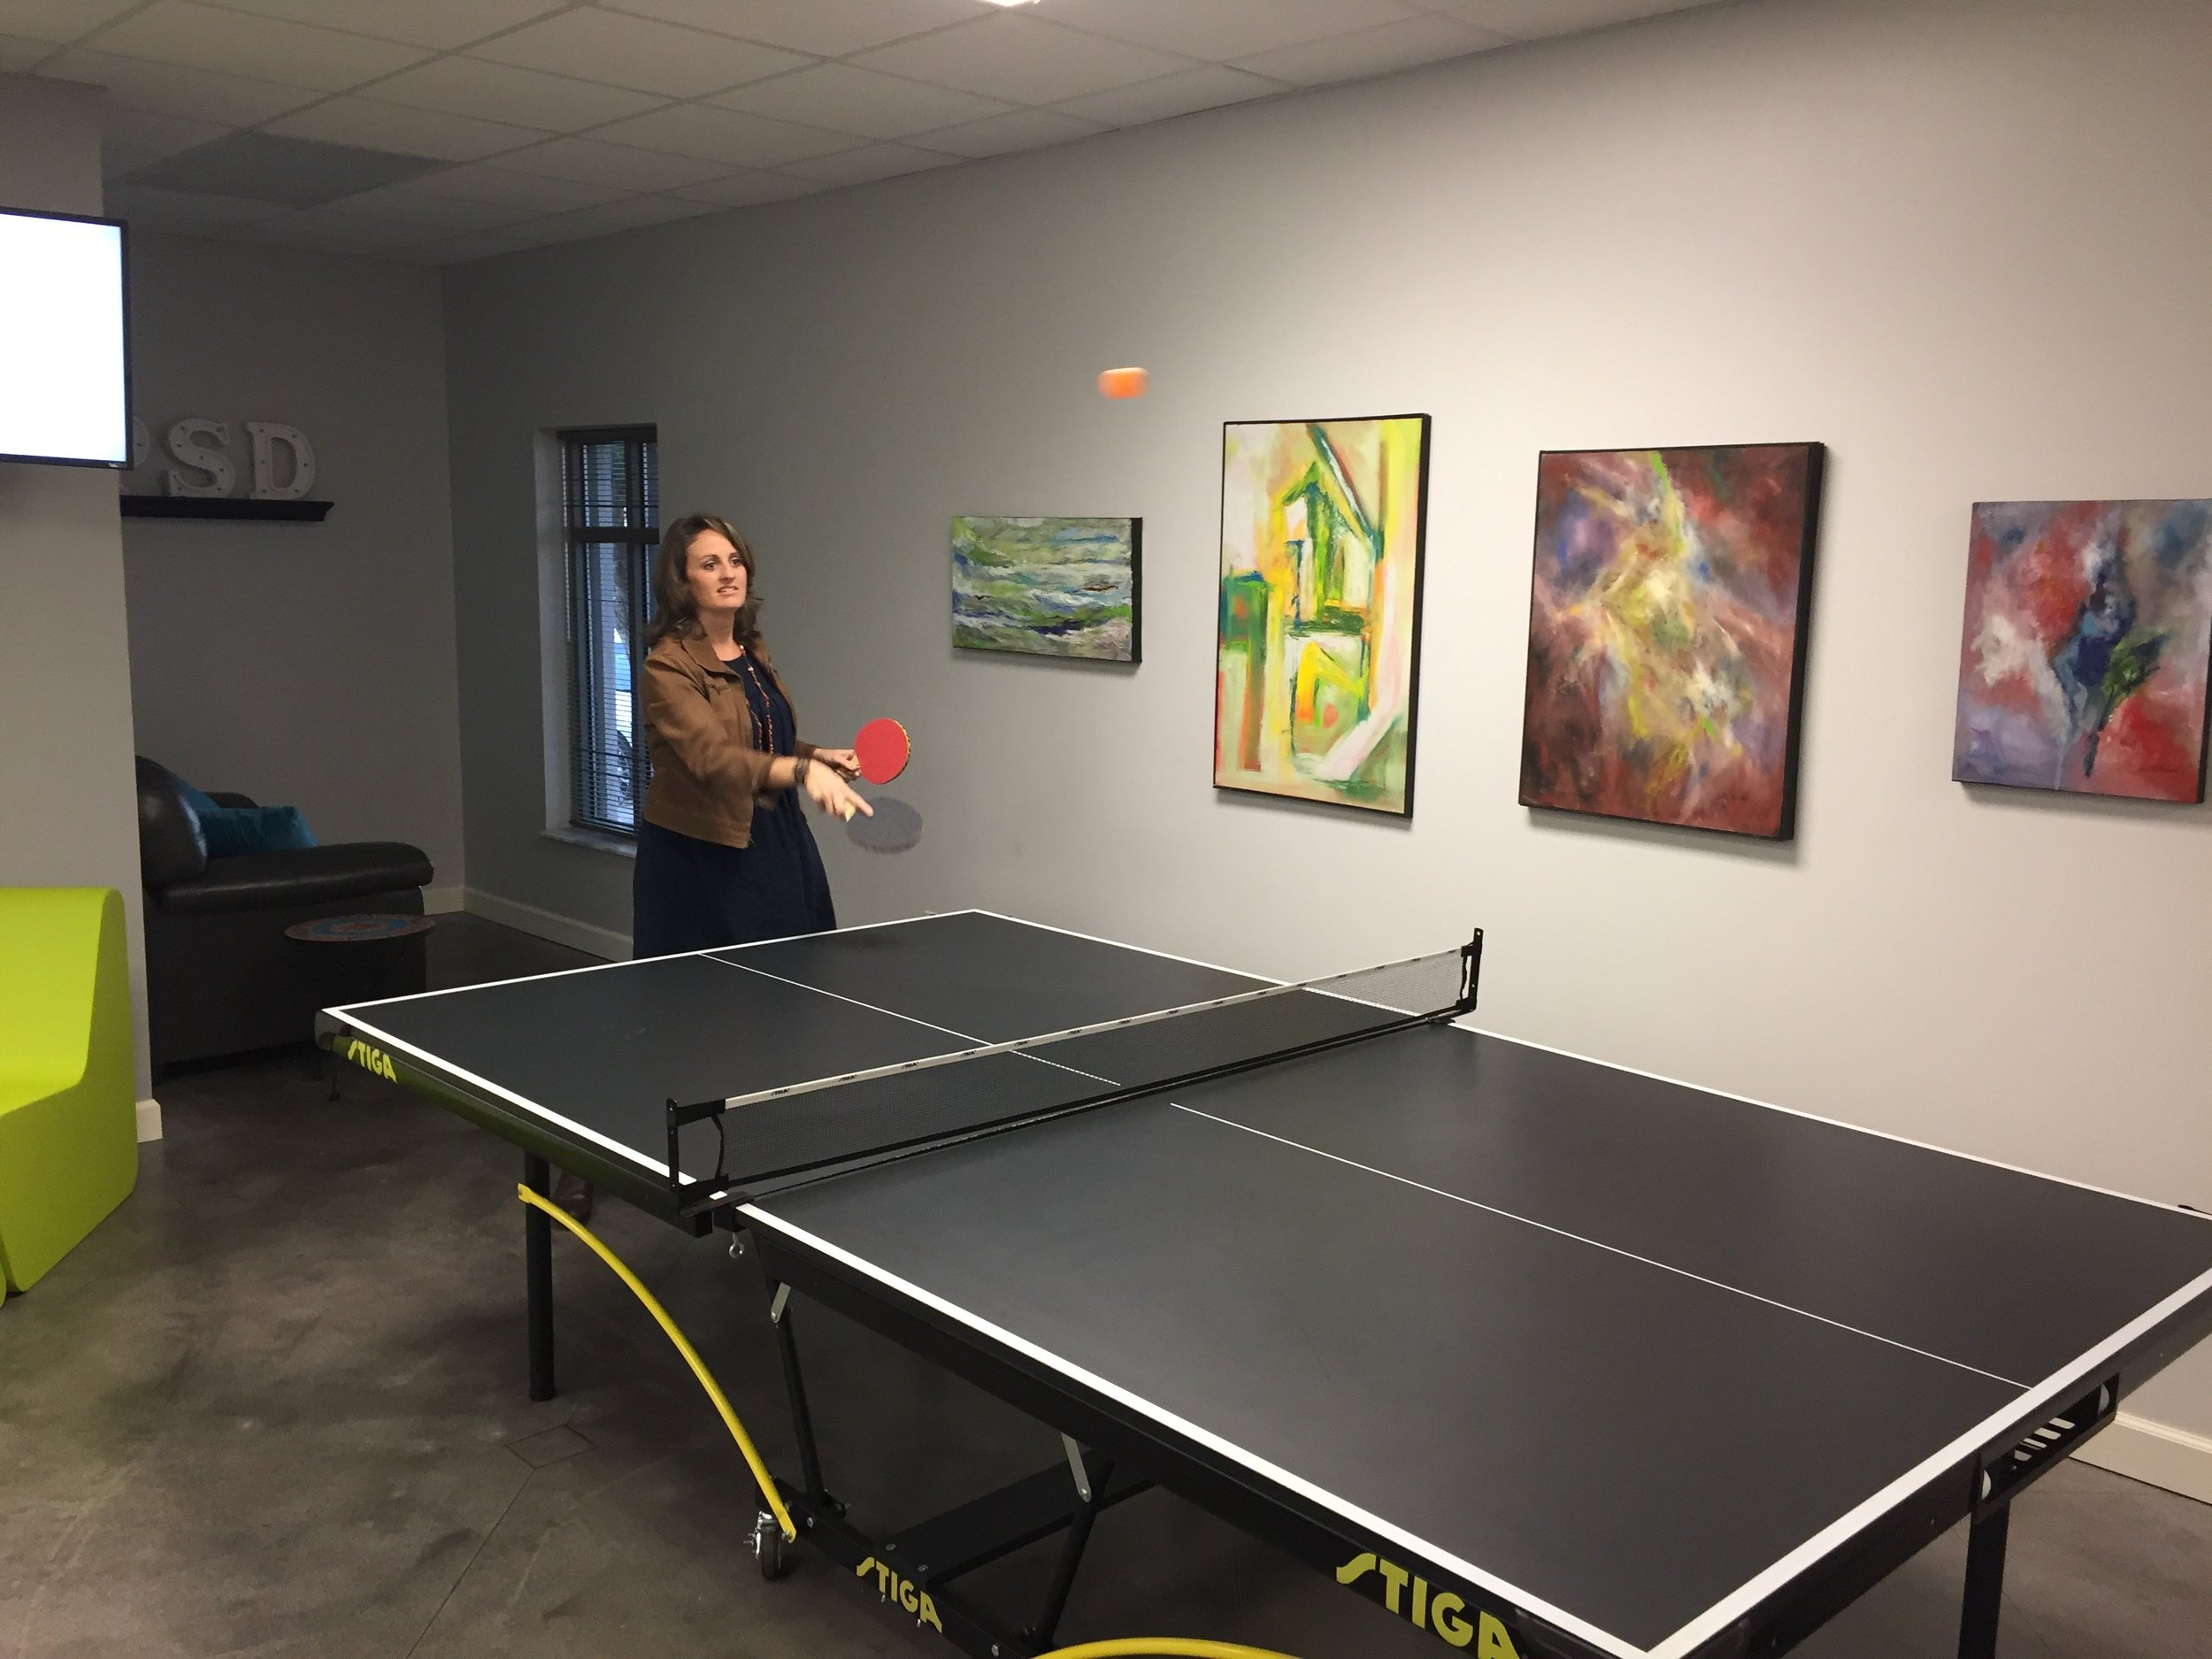 Kelly trying our our signature two-handed ping-pong.